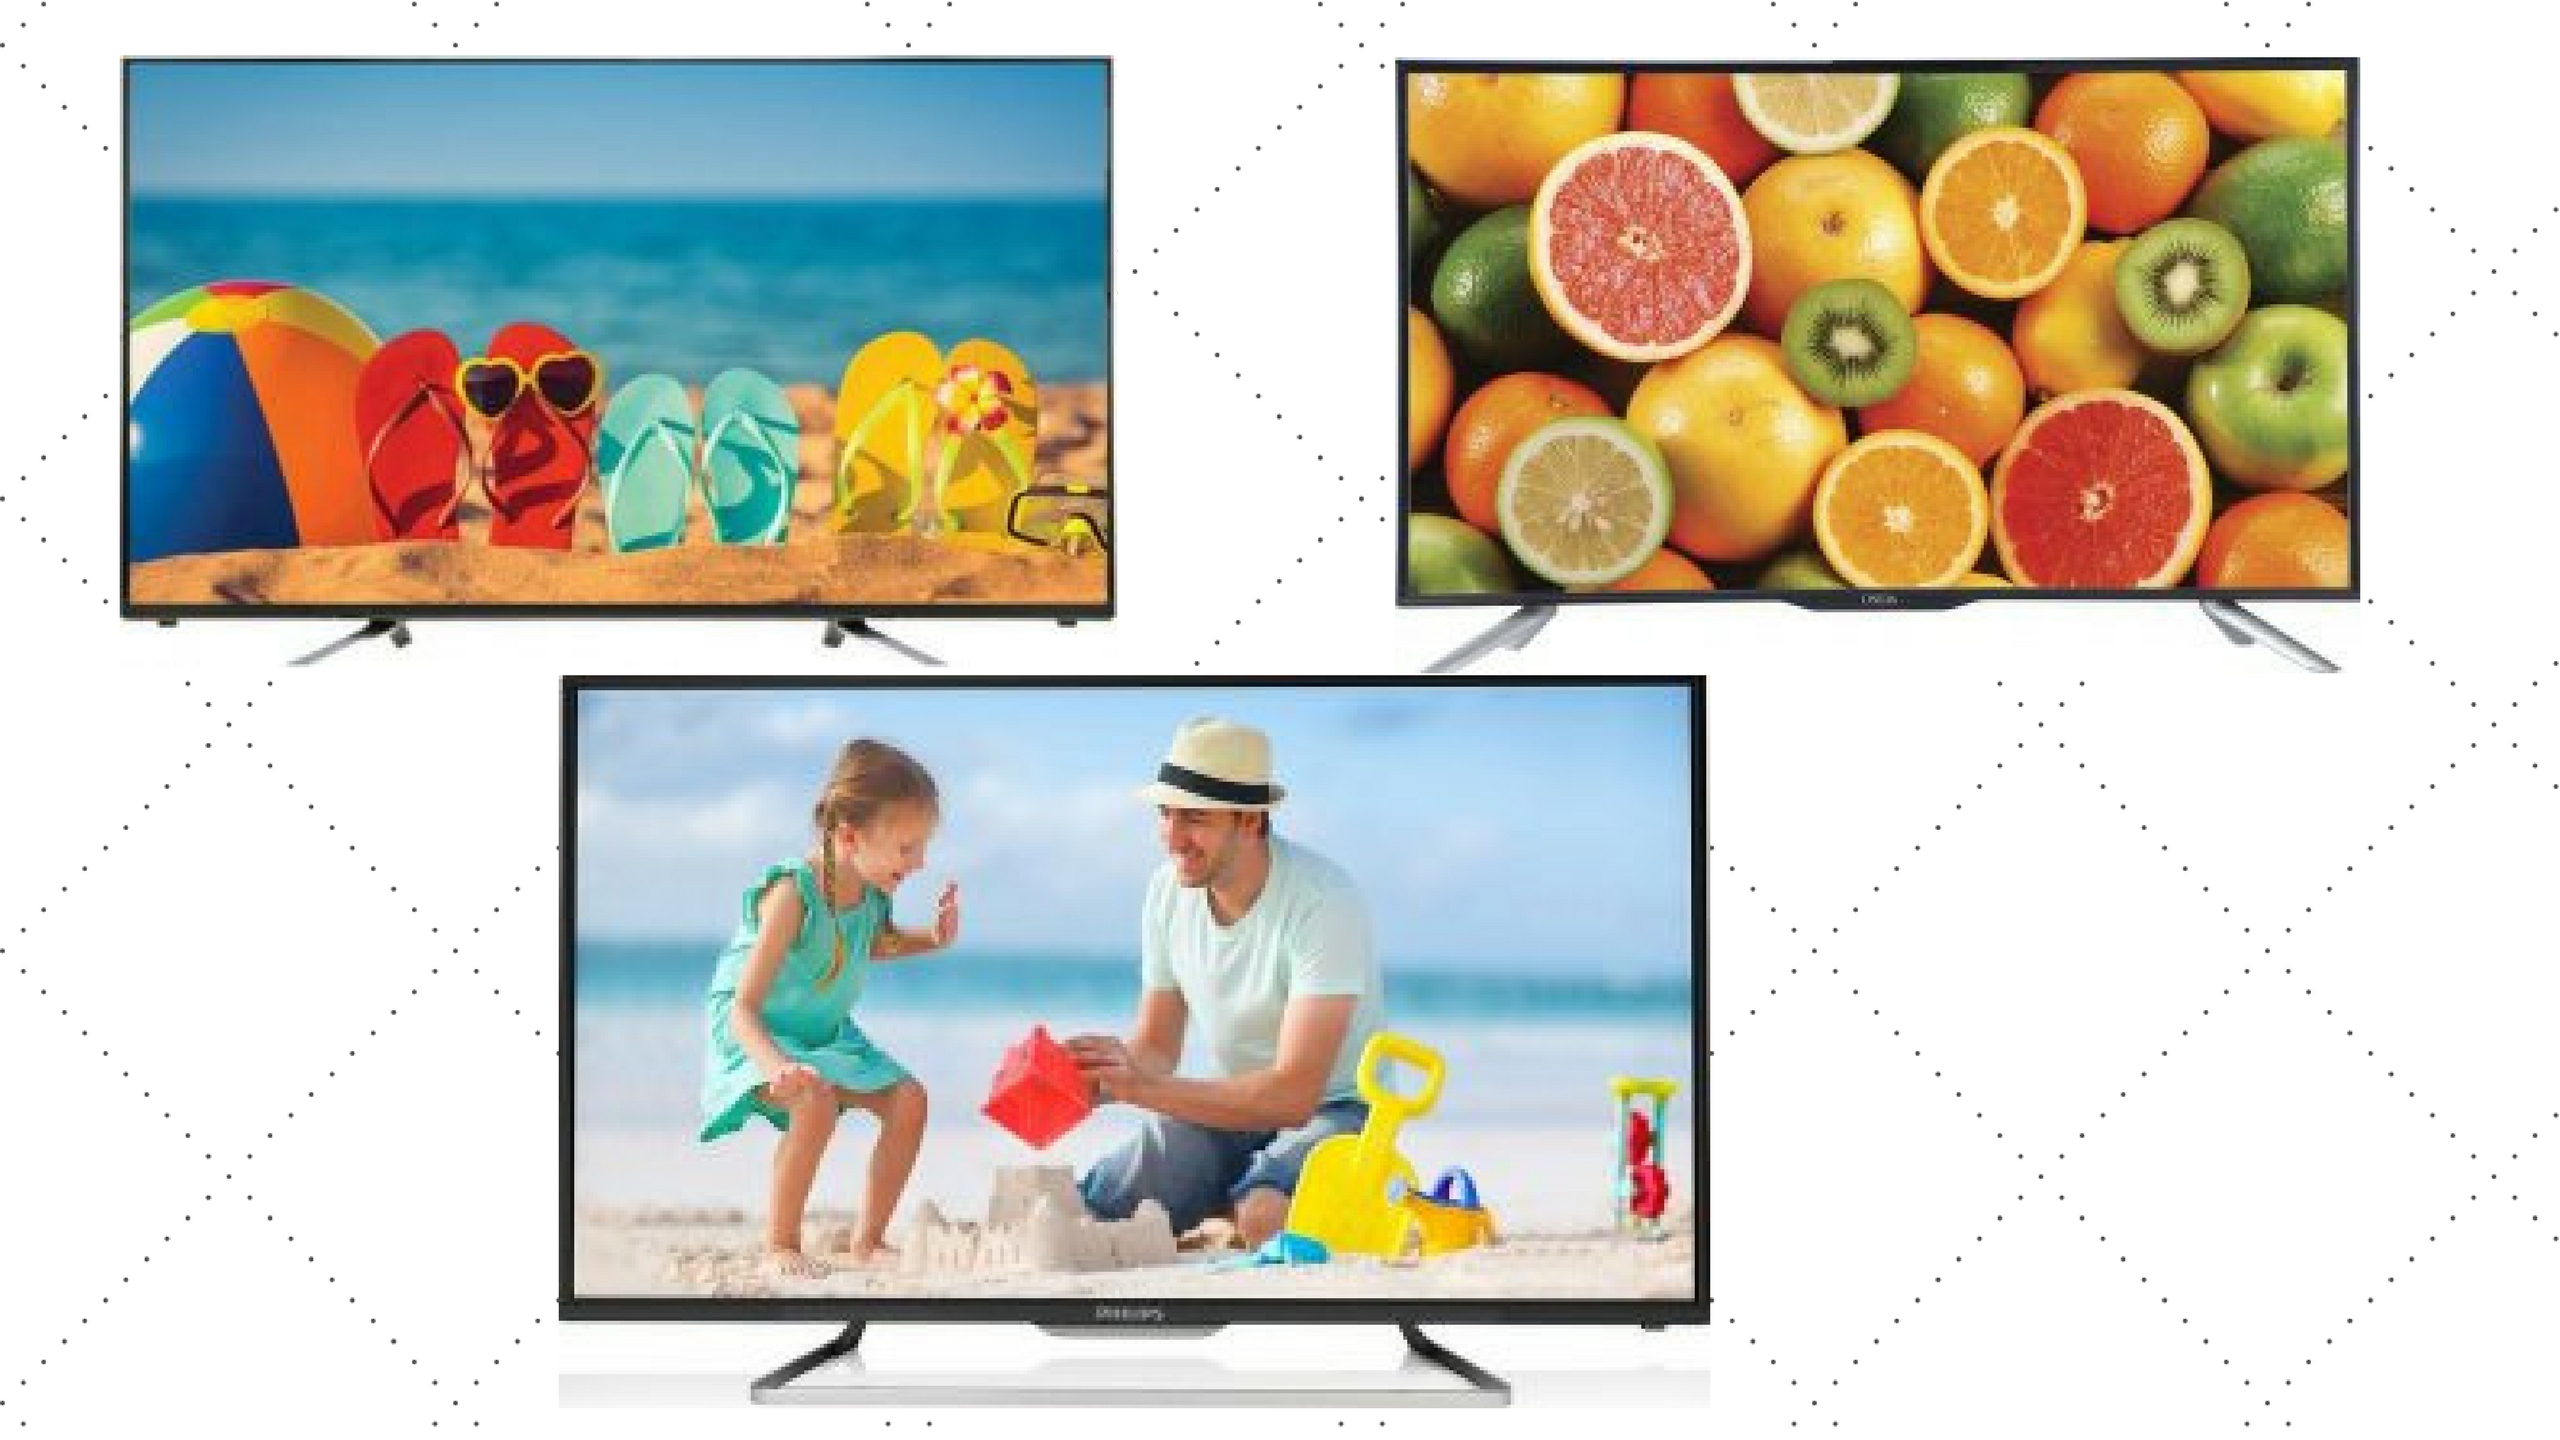 Top 10 Best 40 Inch Led TV in India | Reviews & Price List 2018